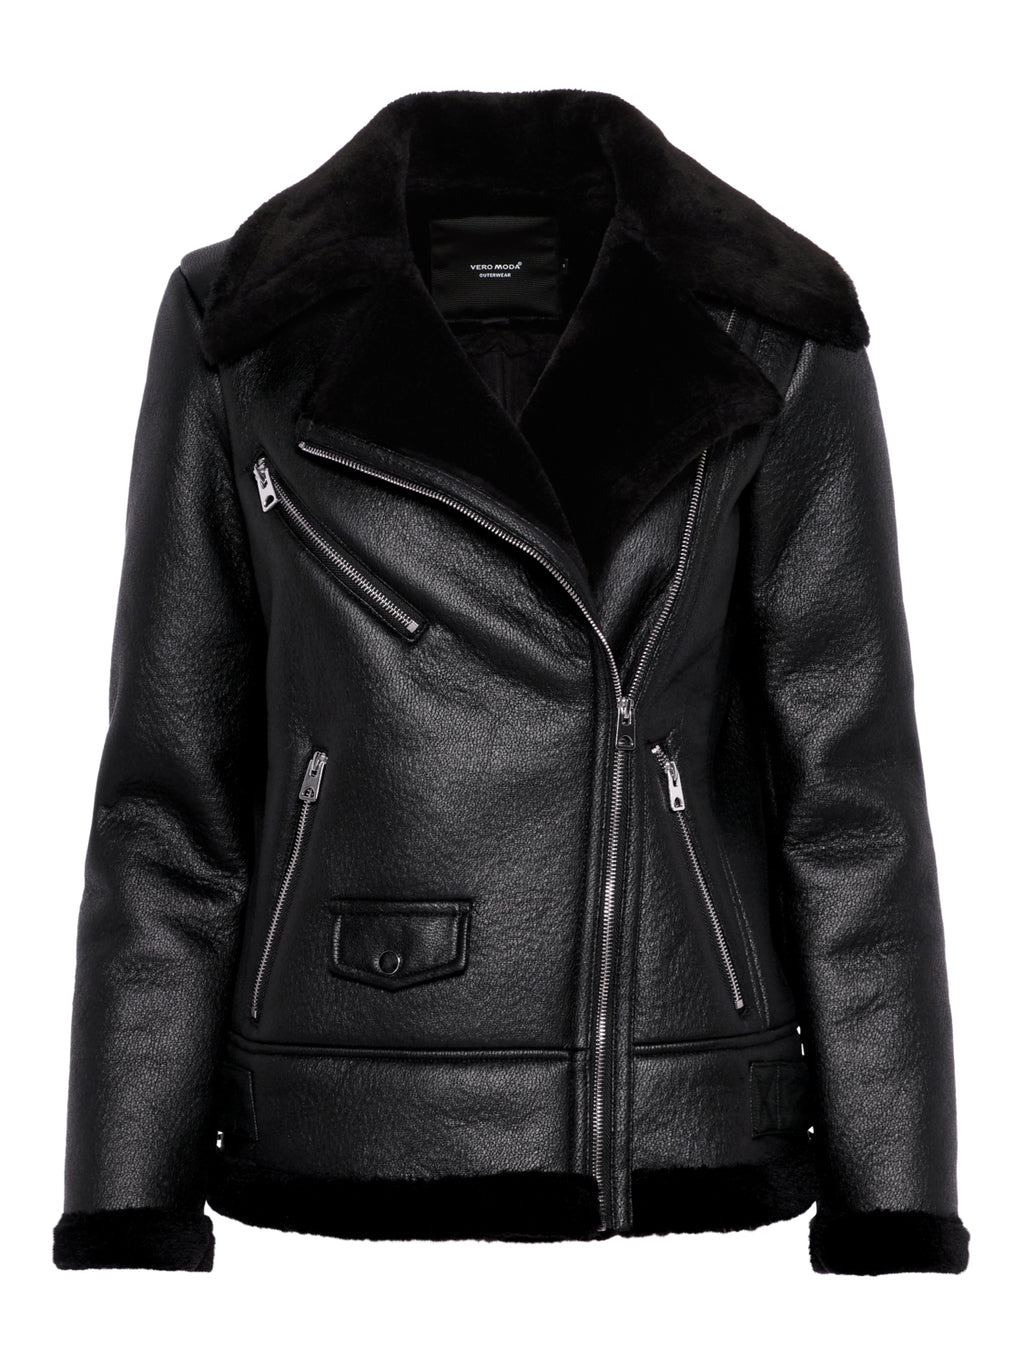 Shop black faux shearling aviator jackets by Vero Moda for women at Coveted Style.